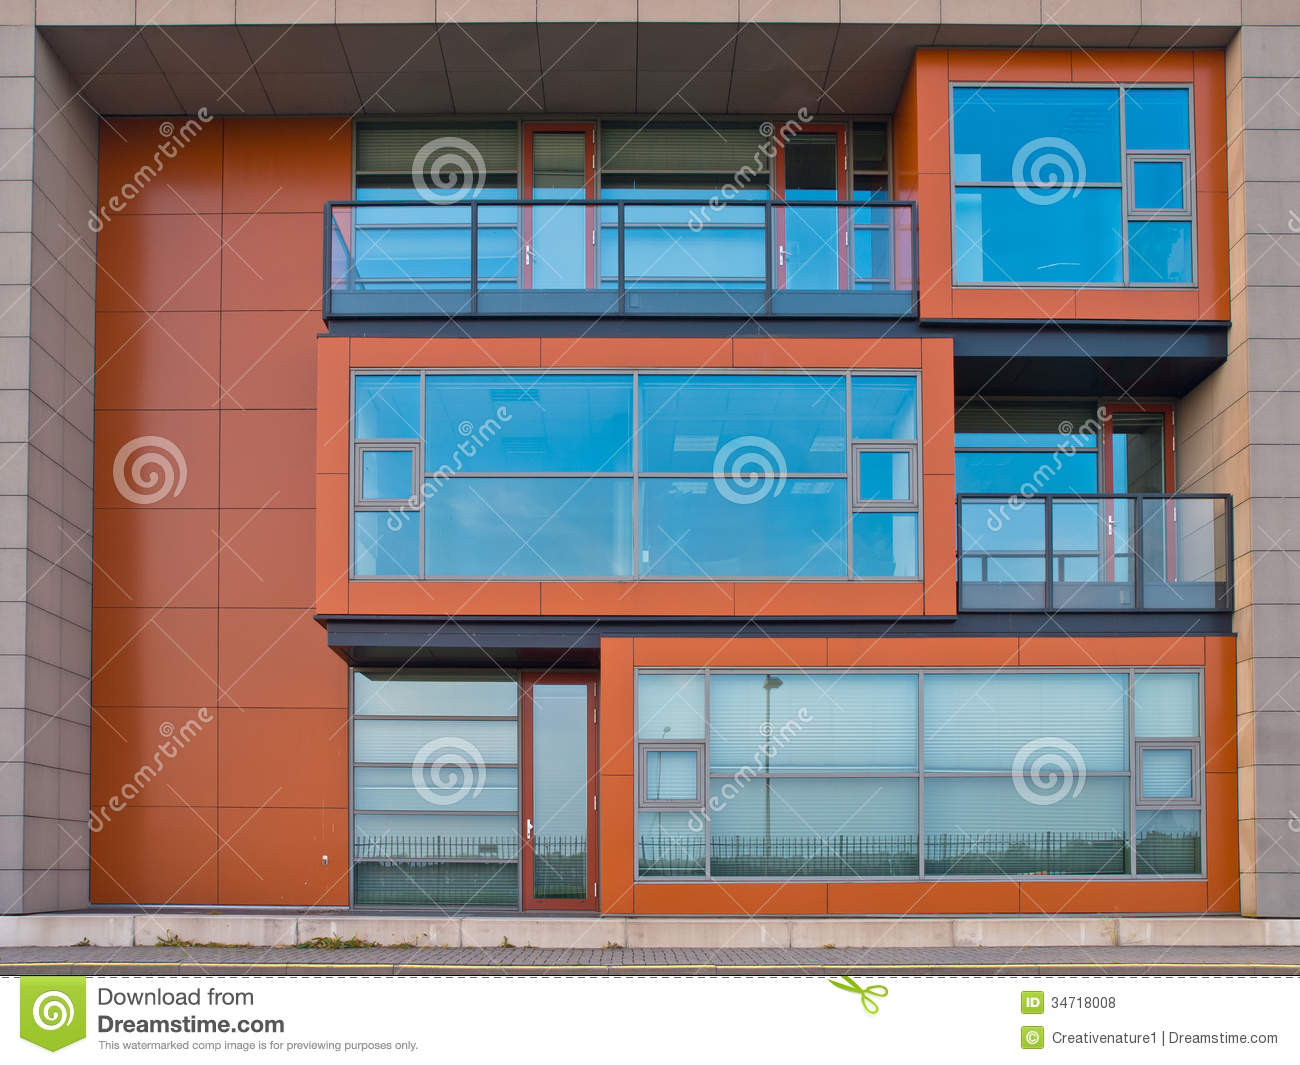 Cubic design office building exterior stock photo image for Modern office building exterior design